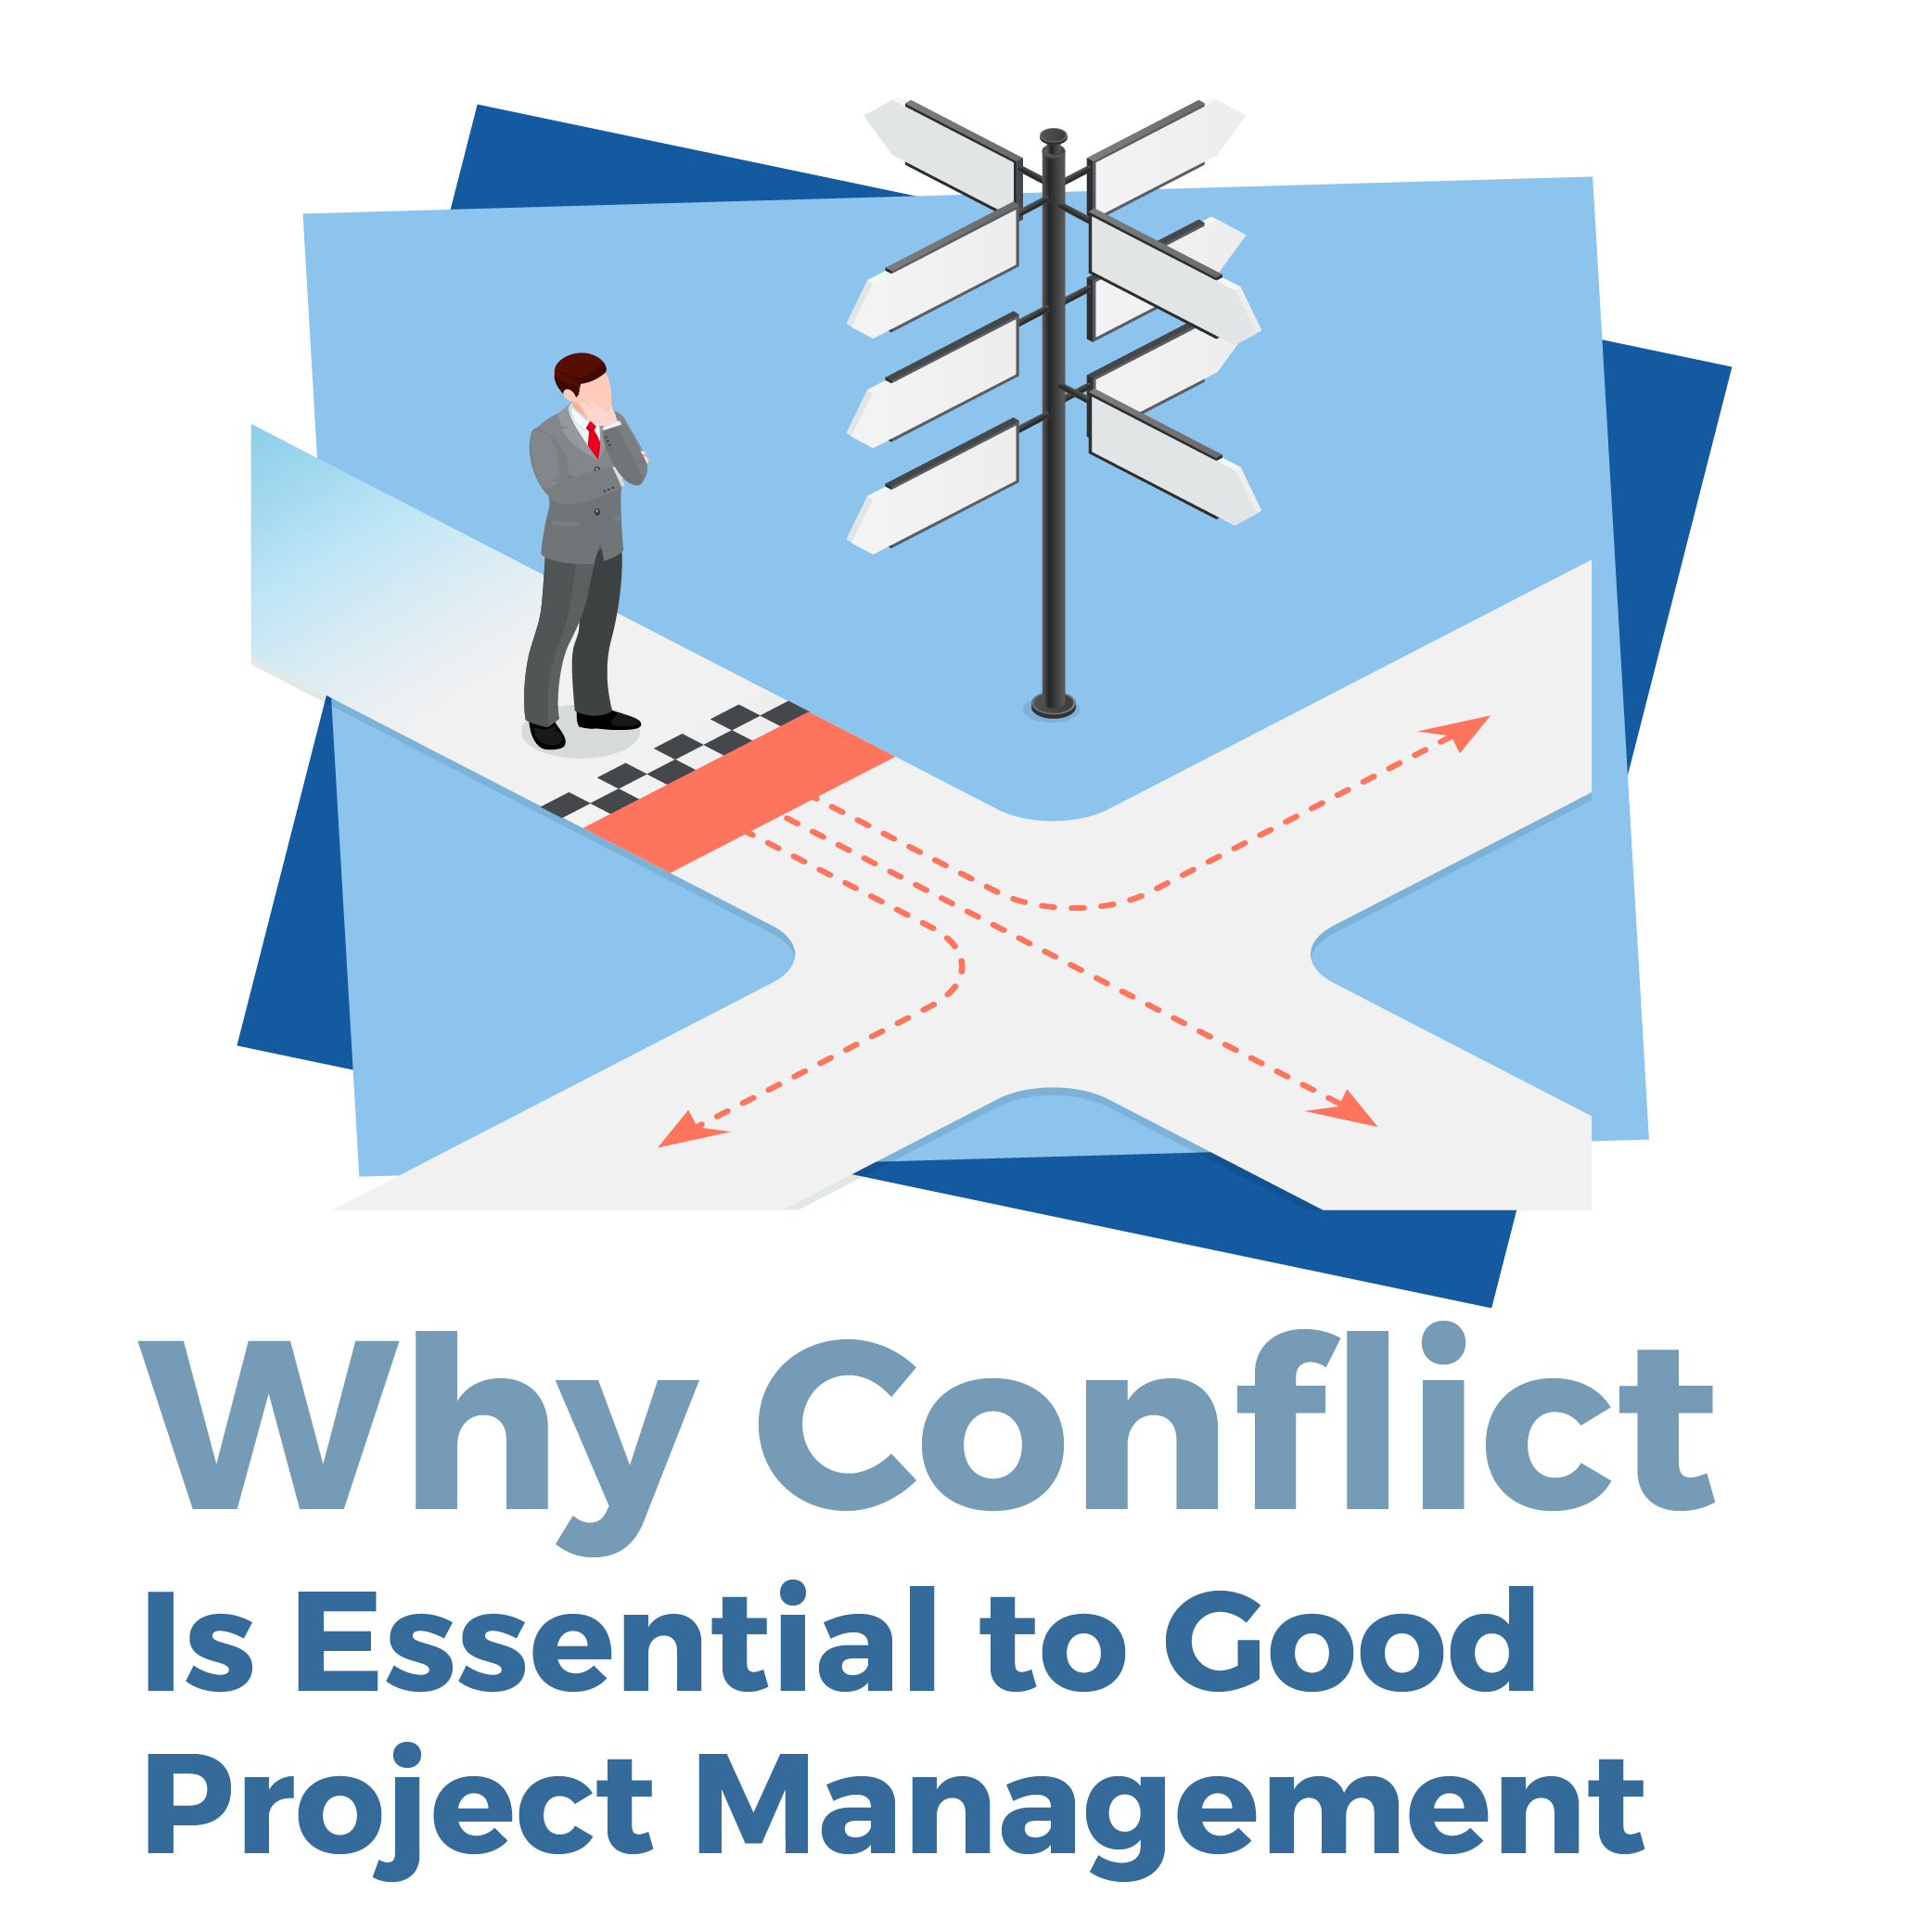 Why Conflict Is Essential to Good Project Management